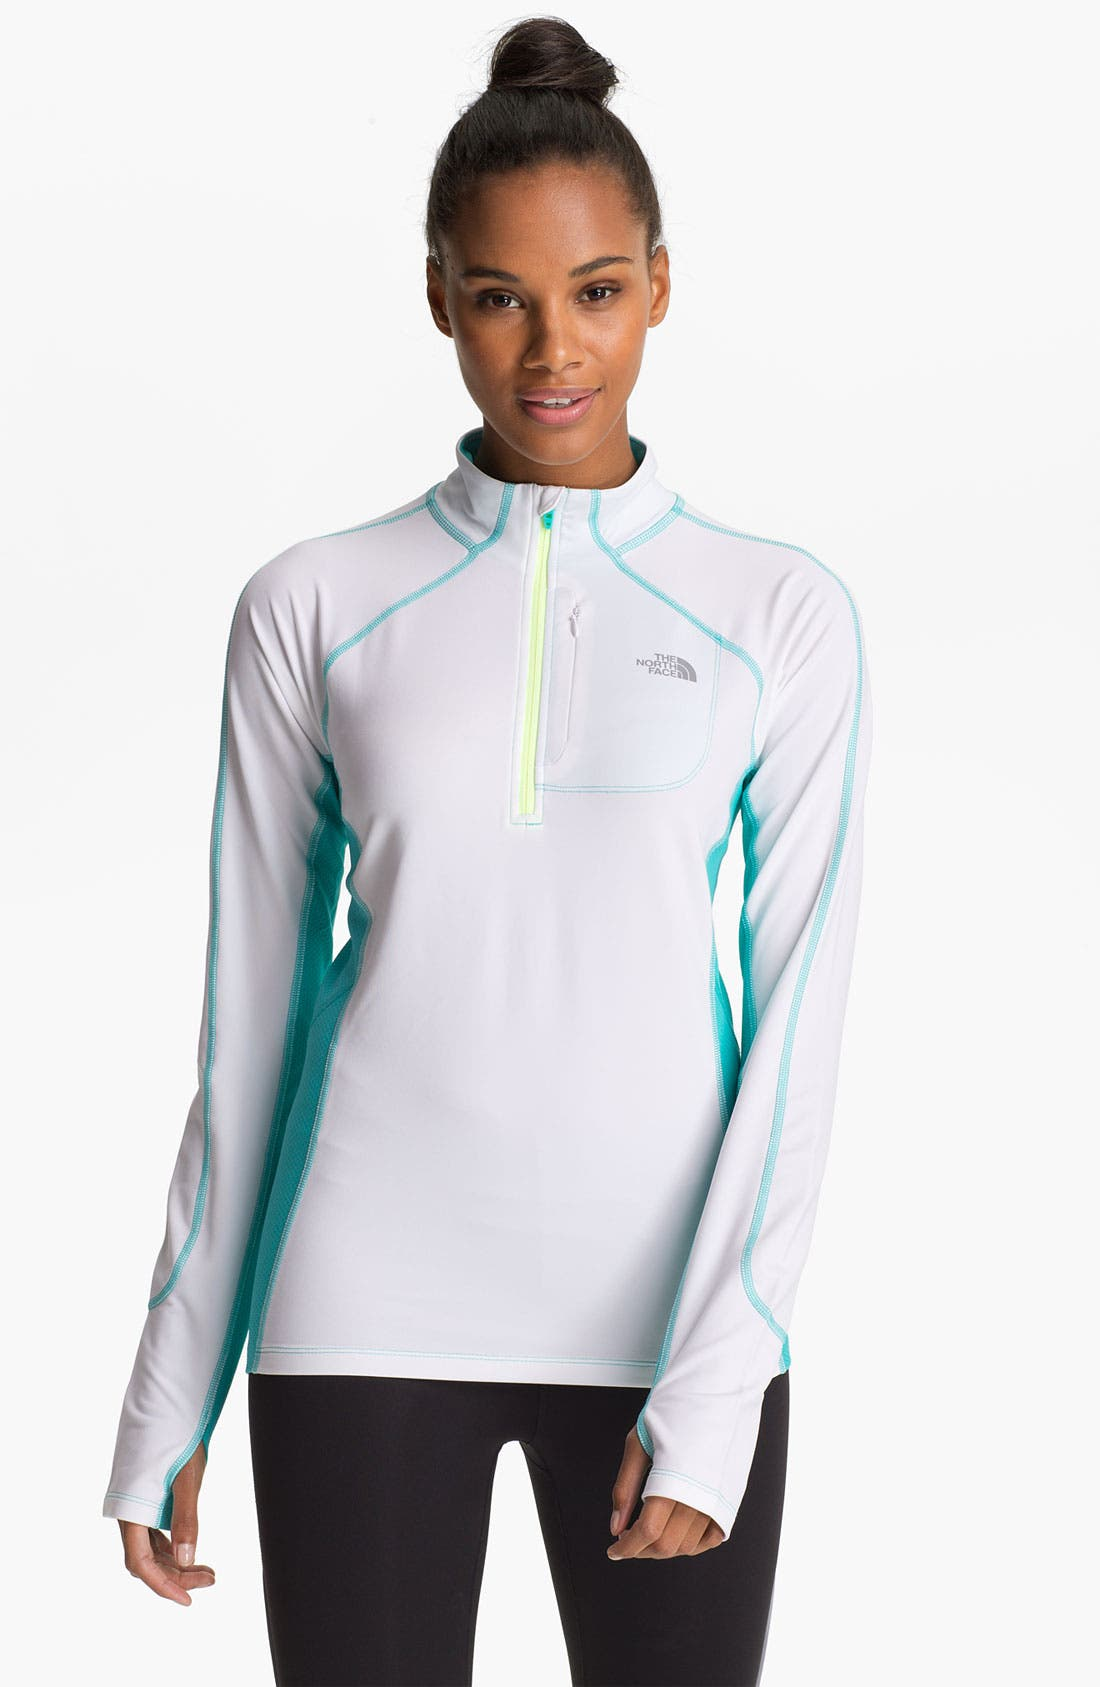 Alternate Image 1 Selected - The North Face 'Impulse' Quarter Zip Top